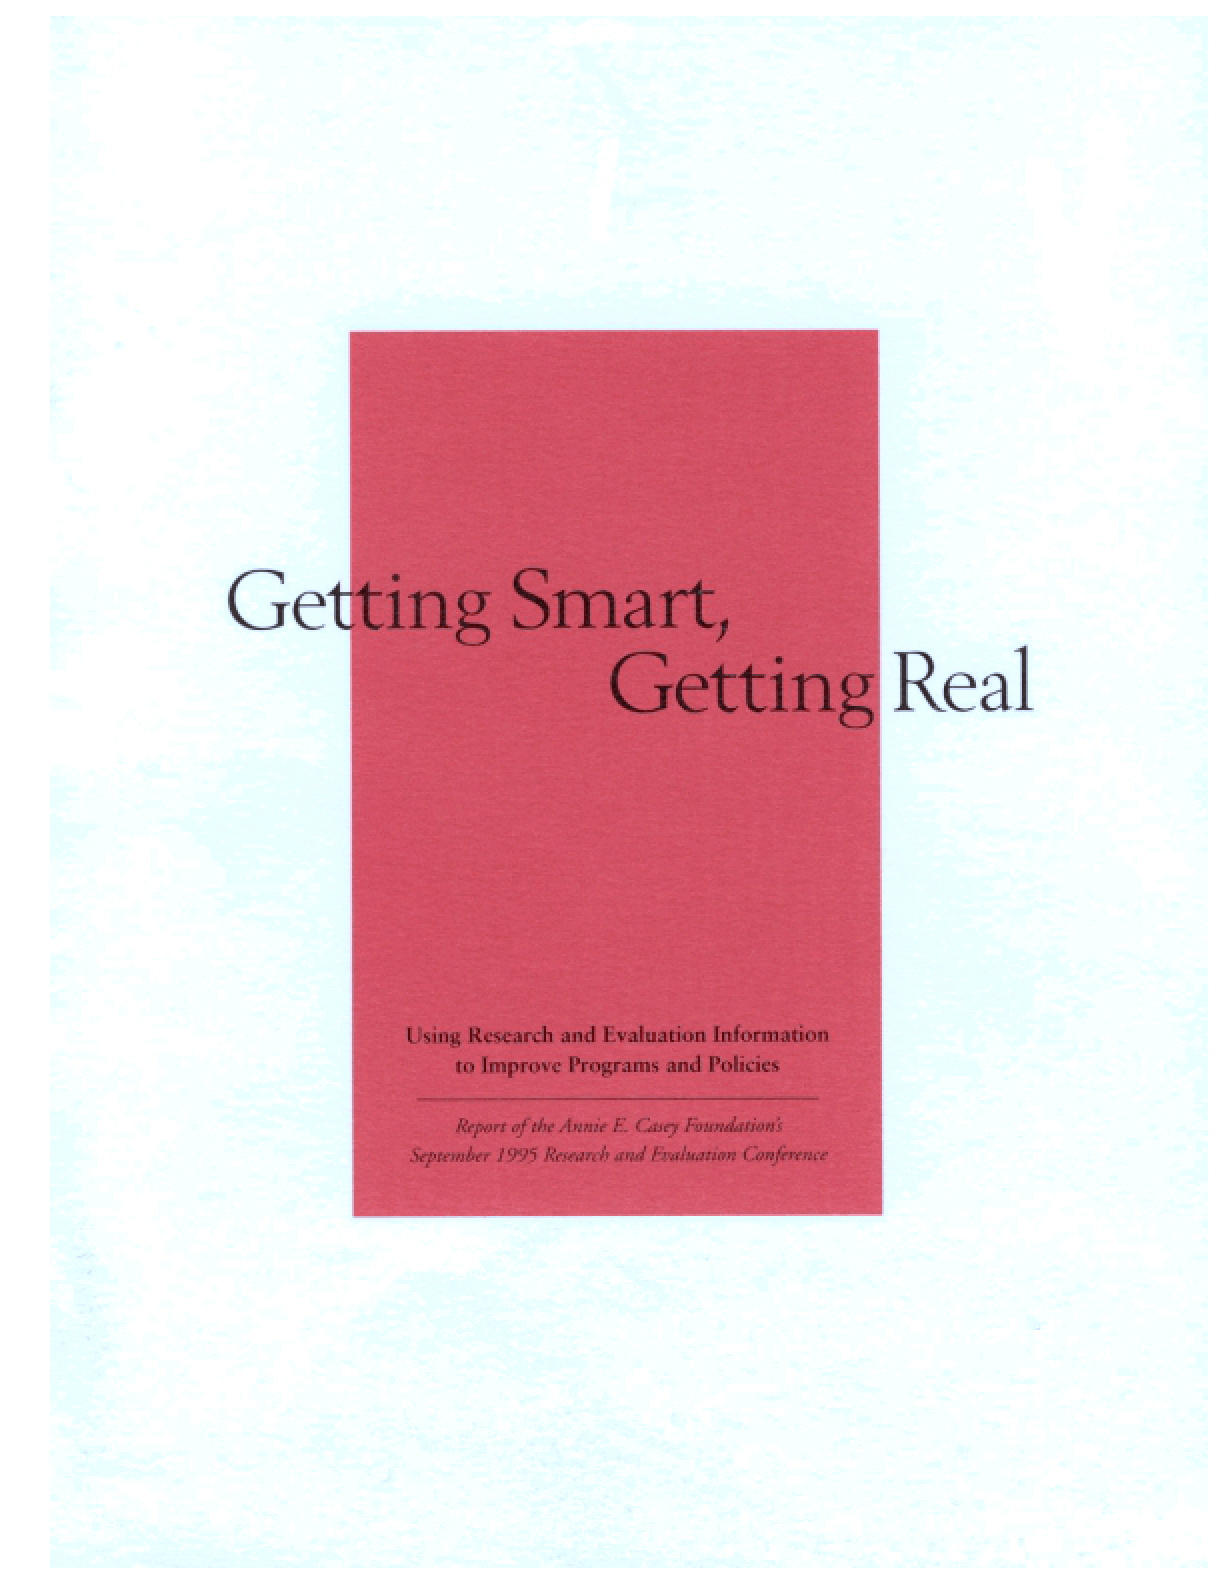 Getting Smart, Getting Real: Using Research and Evaluation Information to Improve Programs and Policies